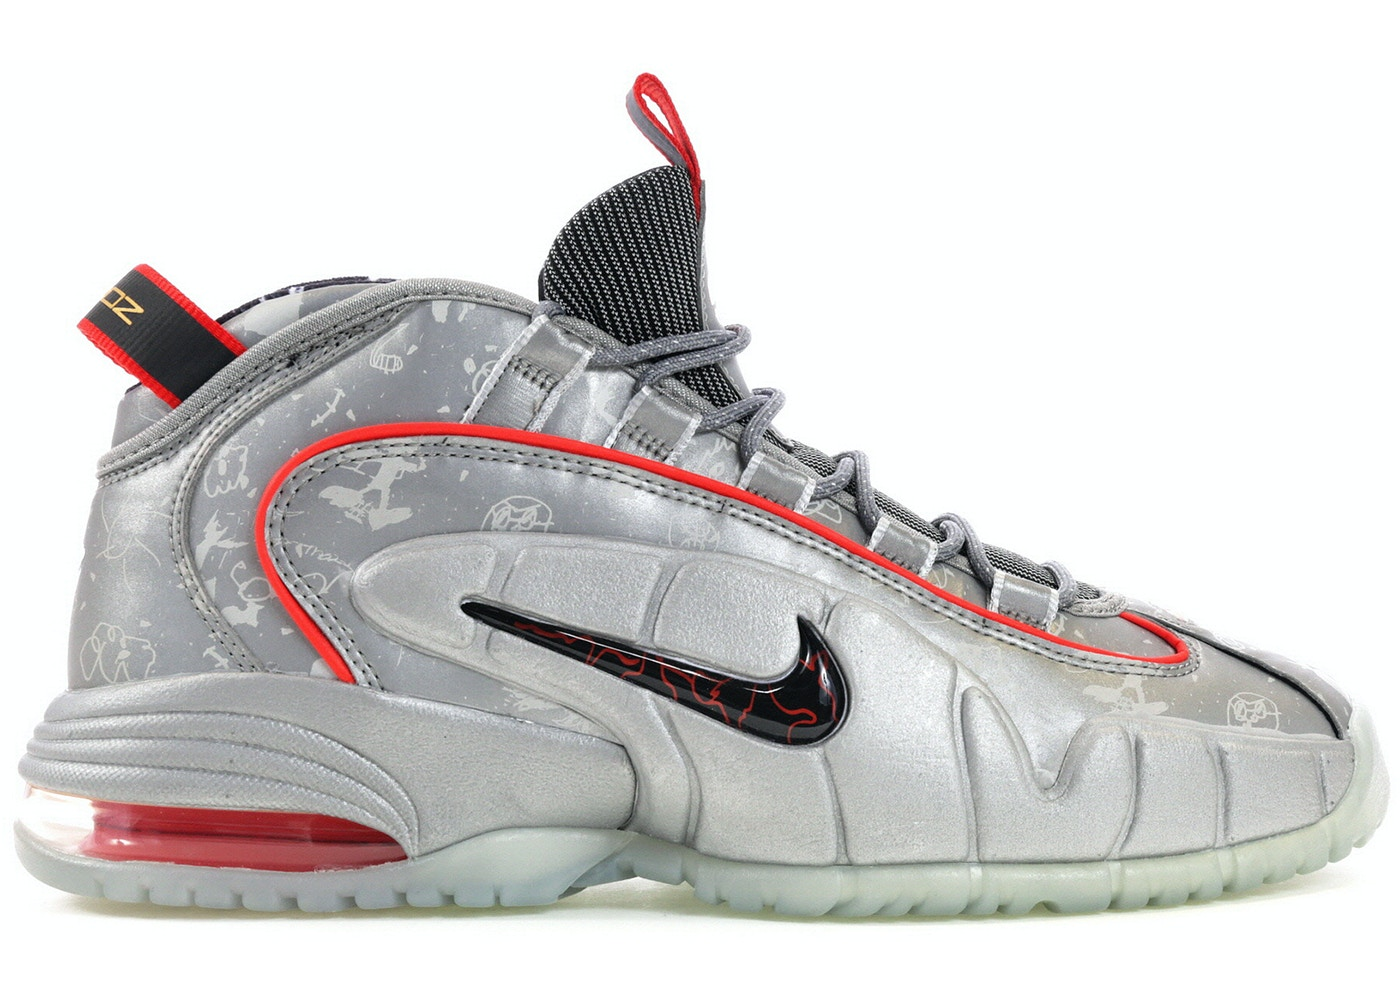 301b6d7c51c24 Nike Air Max Other Shoes - Volatility